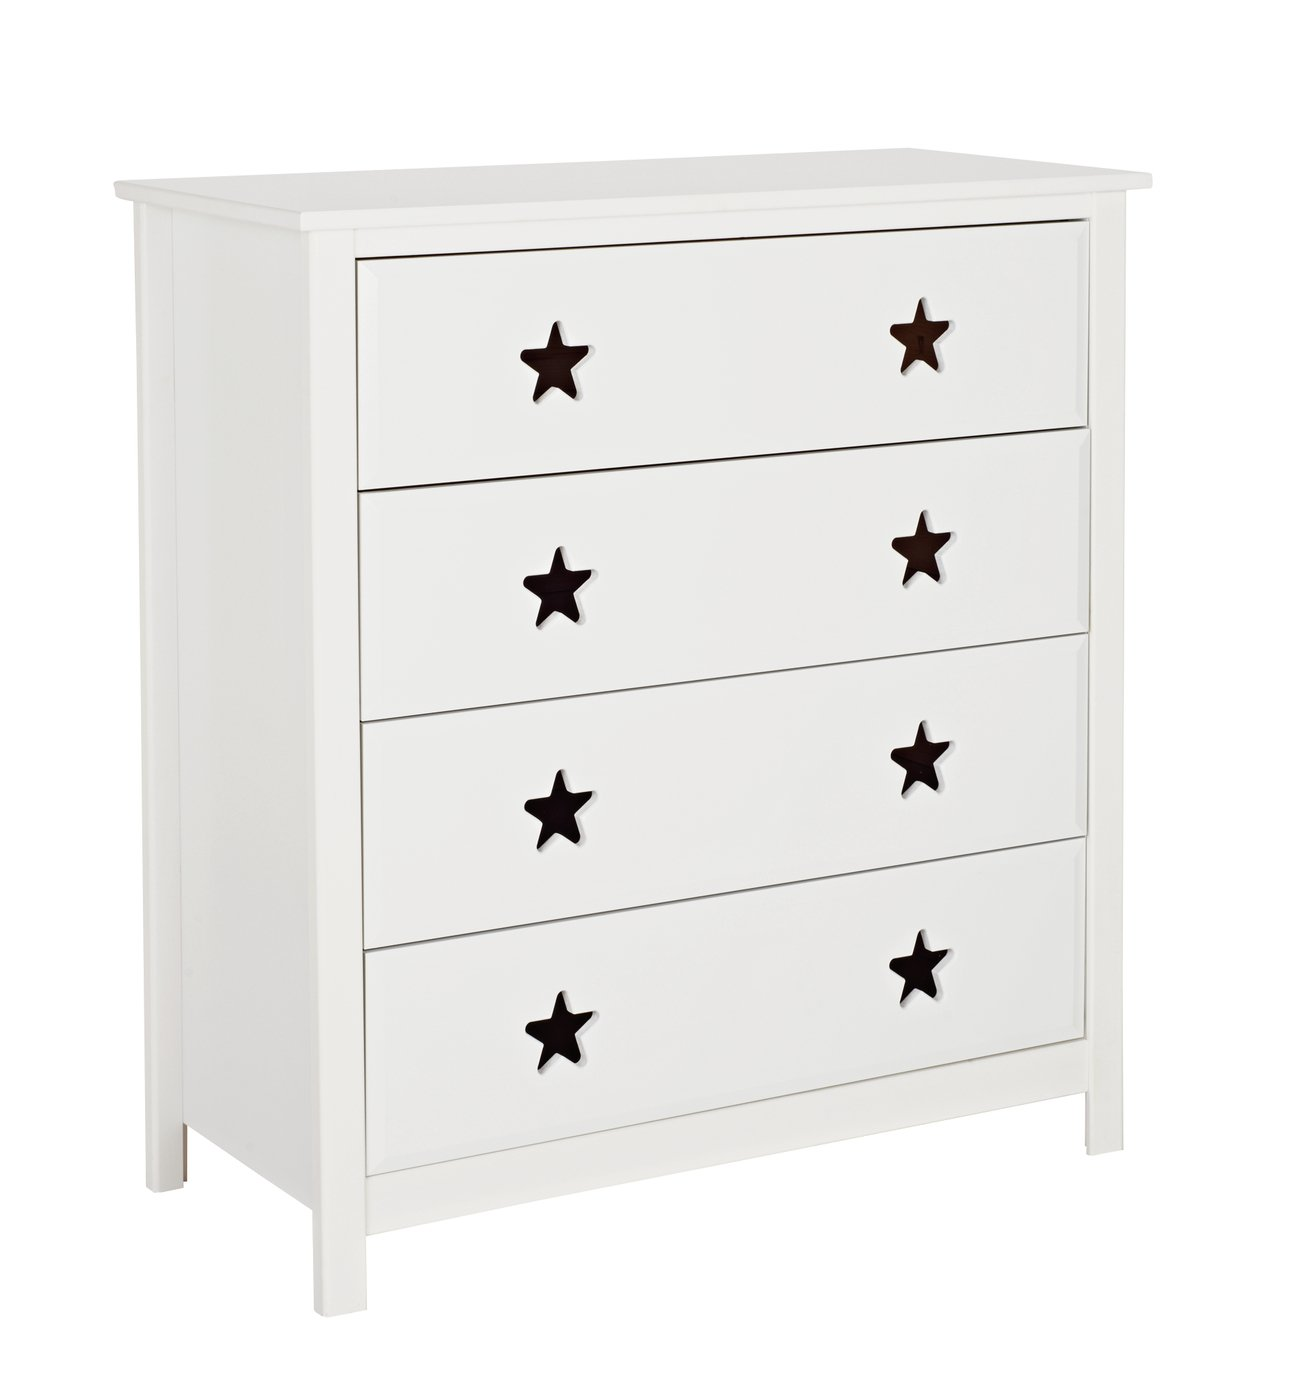 Argos Home Stars White 4 Chest of Drawers review